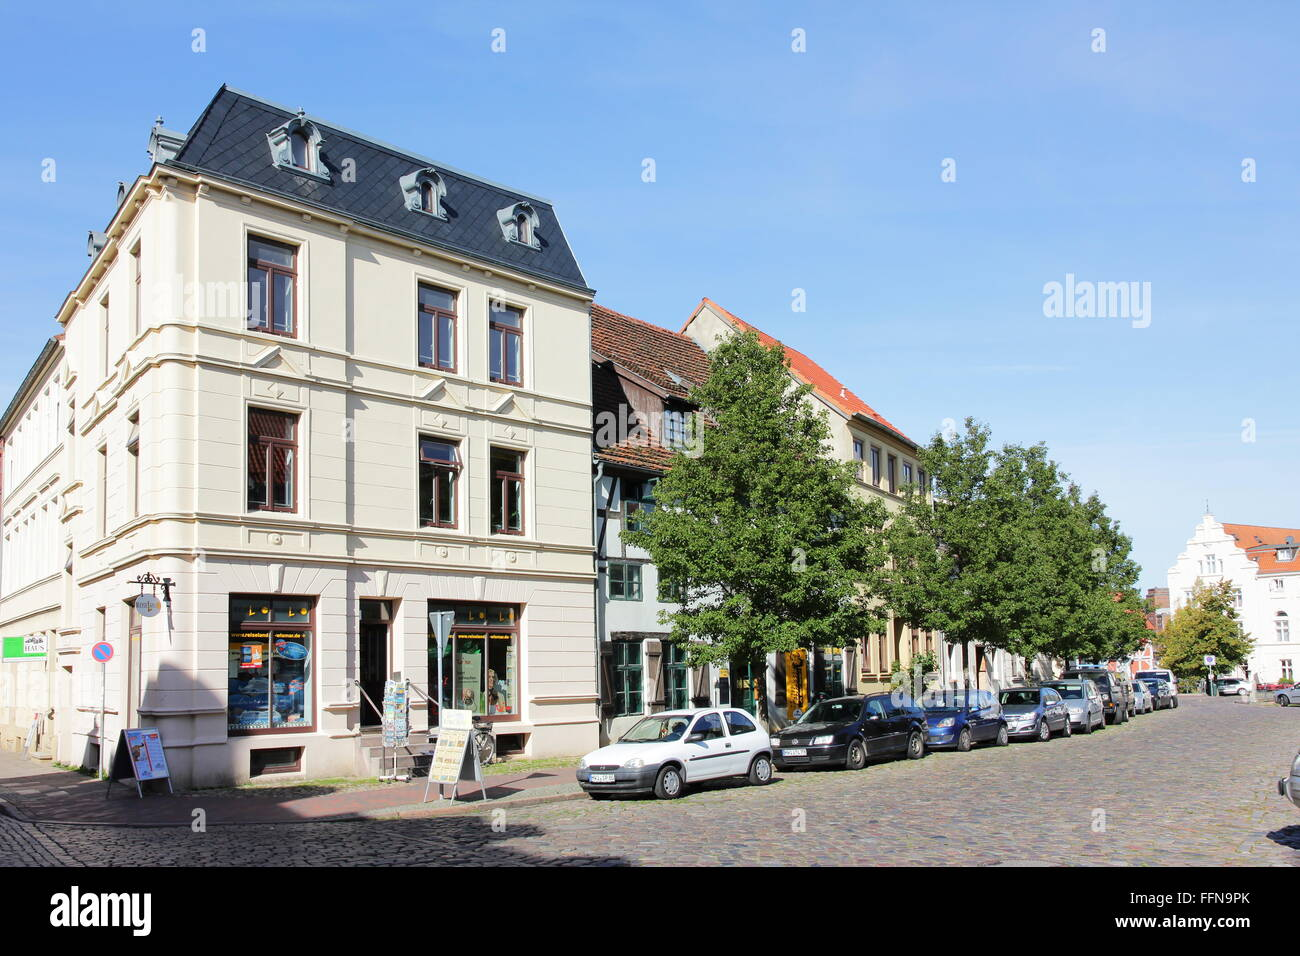 geography / travel, Germany, Mecklenburg-West Pomerania, Wismar, Ziegenmarkt, street in historic city centre, Additional Stock Photo